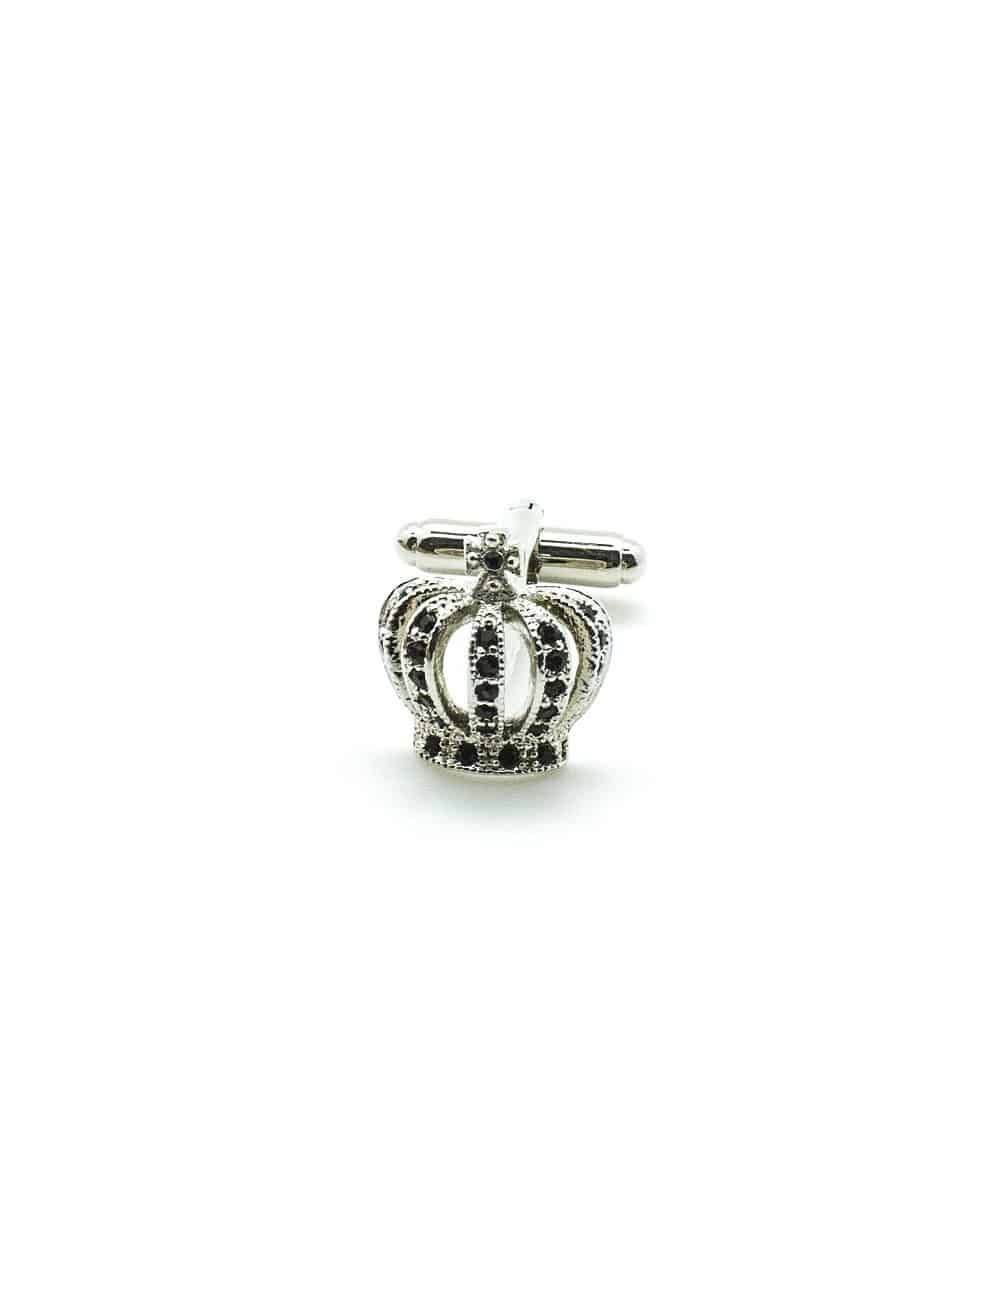 Silver Crown with Black Crystals Cufflinks C263NF-021